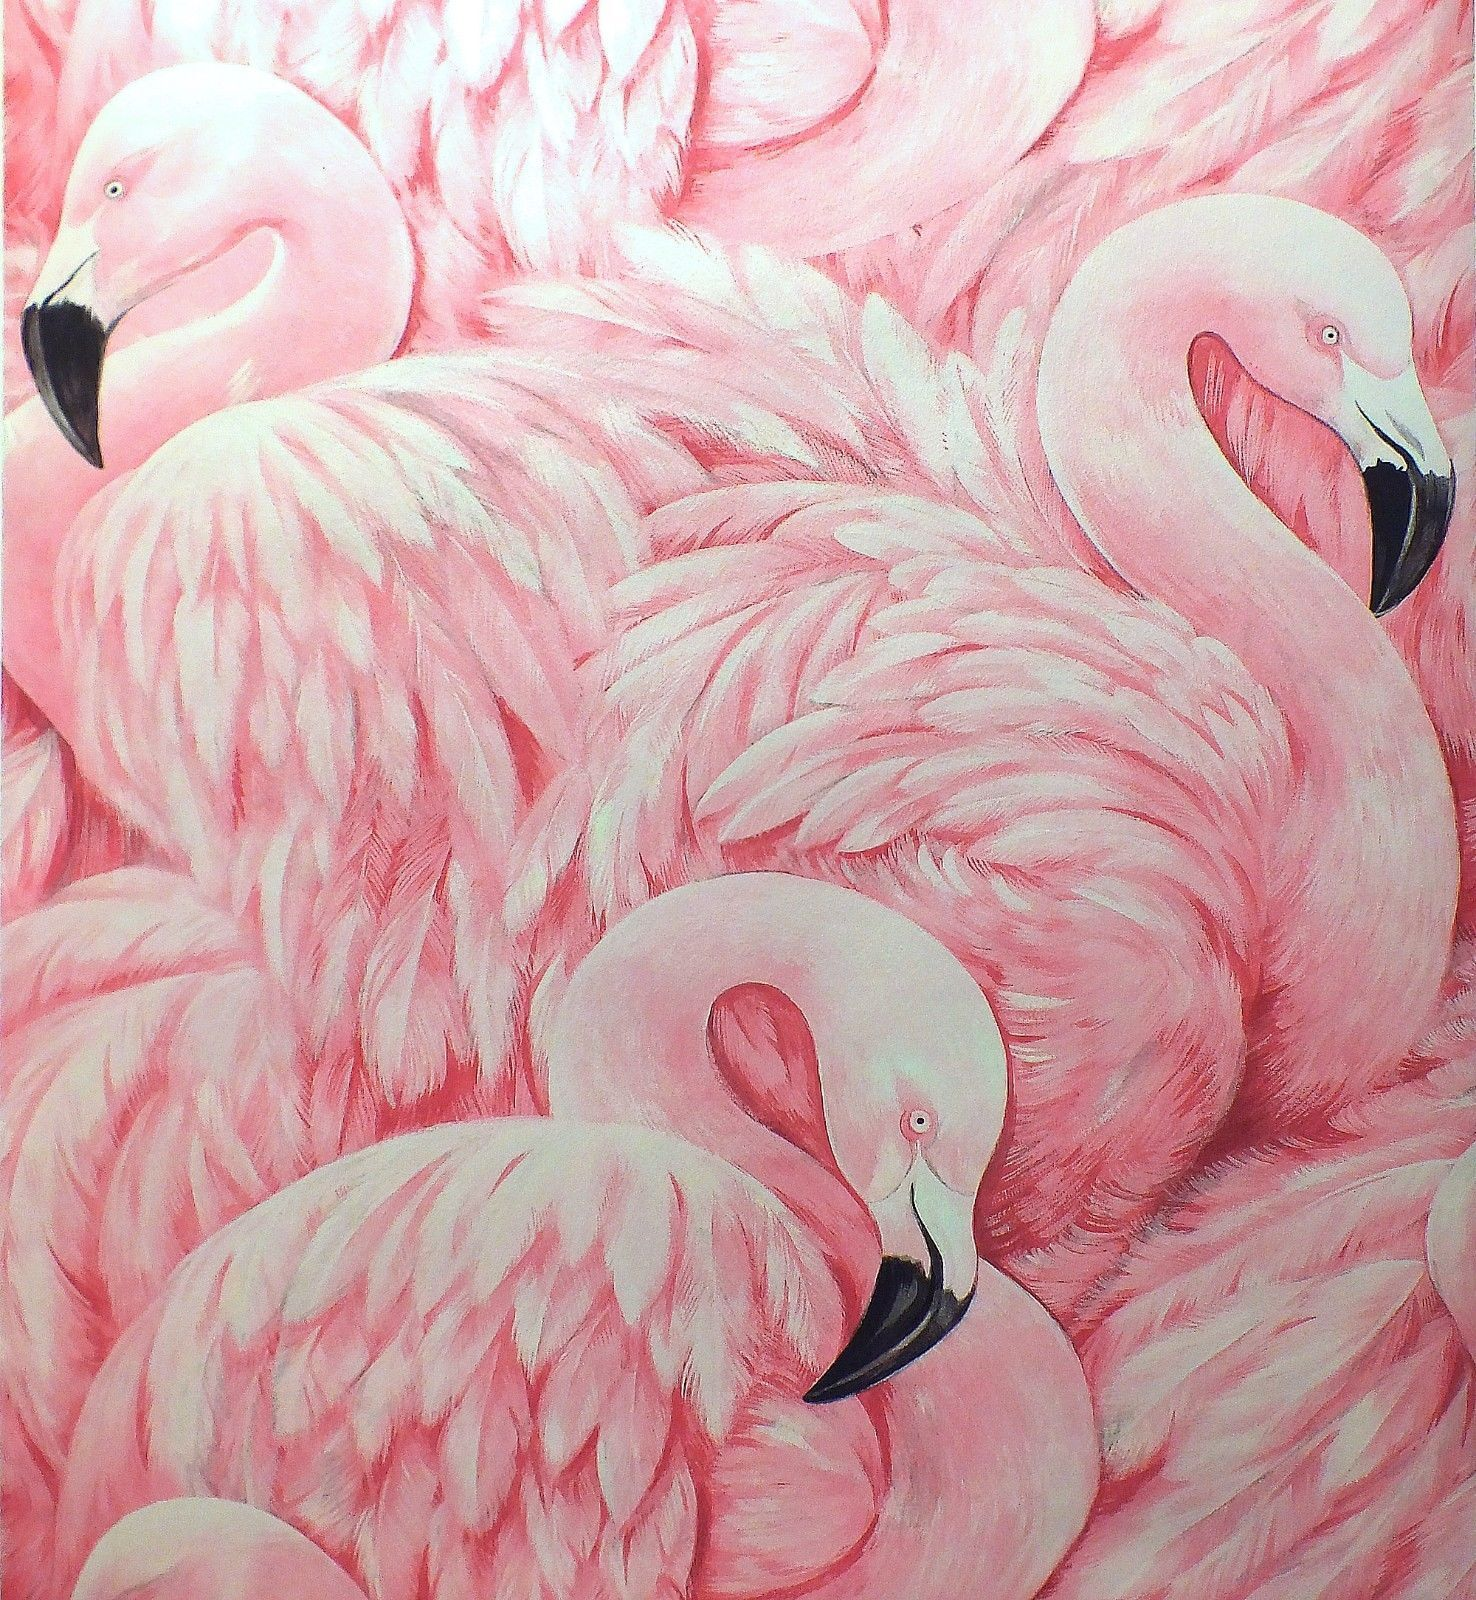 papier peint rasch luxe textur flamant rose plumes rose noir 277890 ebay. Black Bedroom Furniture Sets. Home Design Ideas